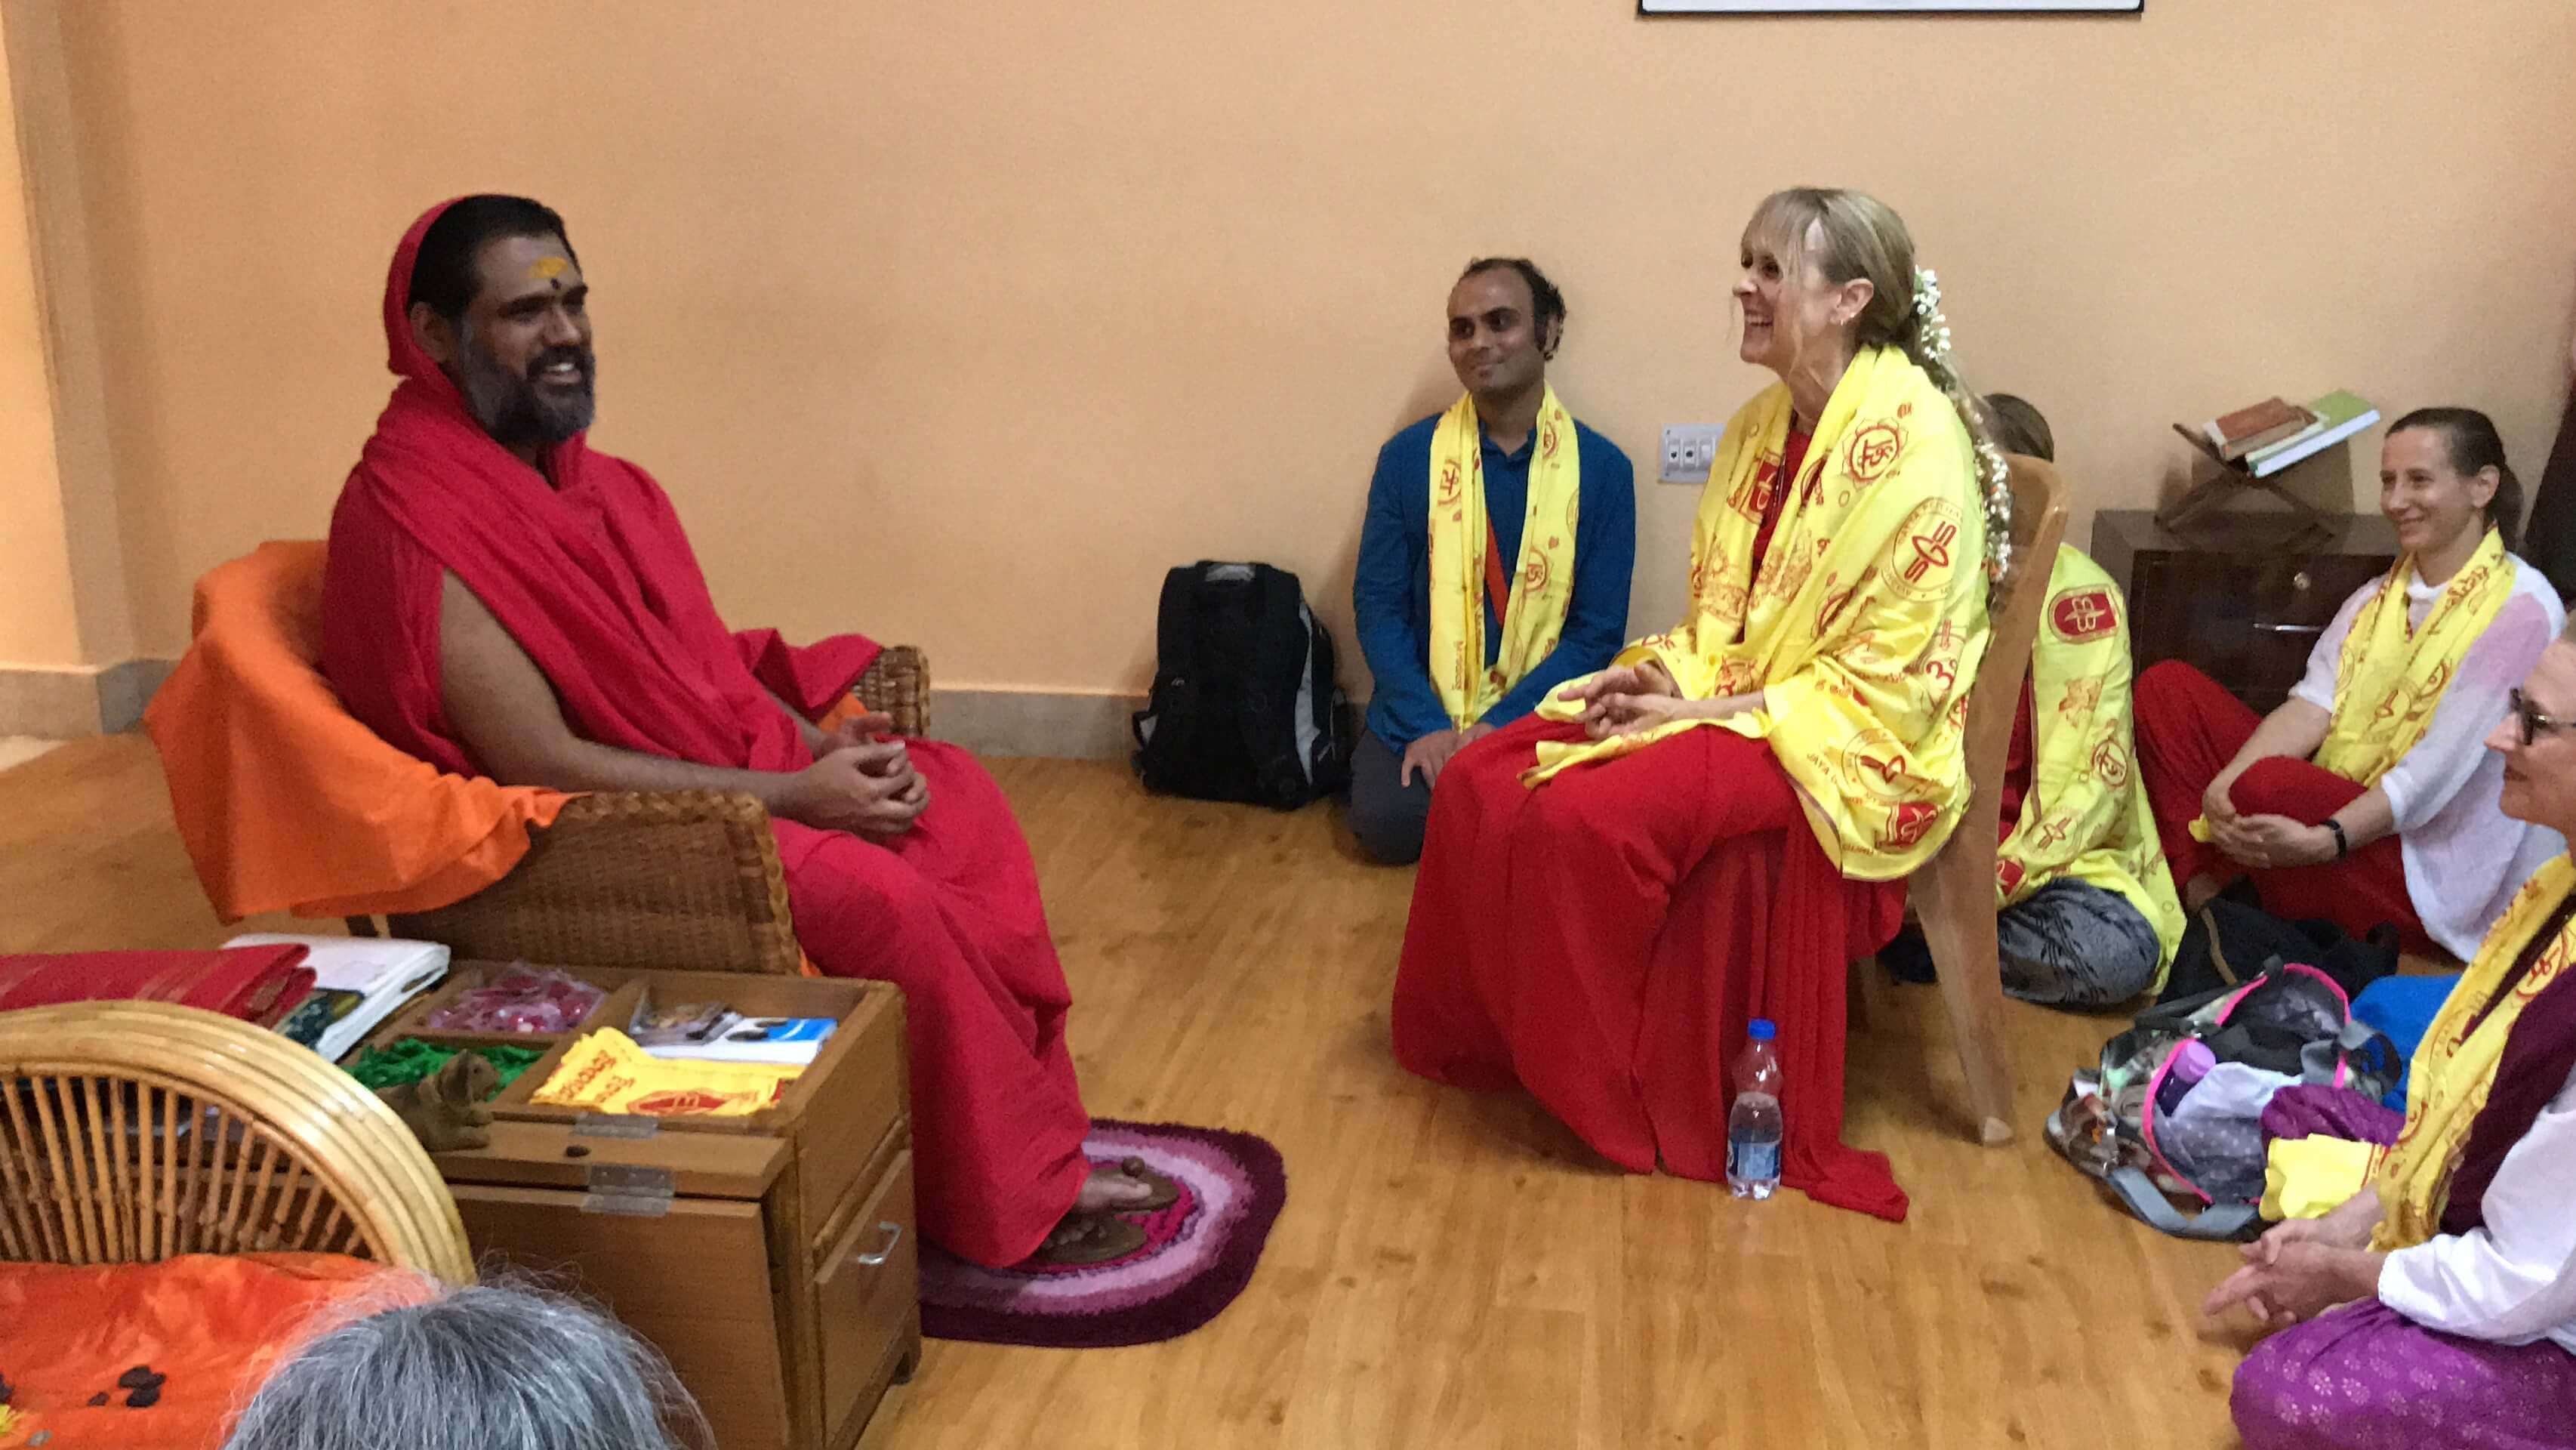 Darshan with Vijayananda Teertha Bala Swamiji